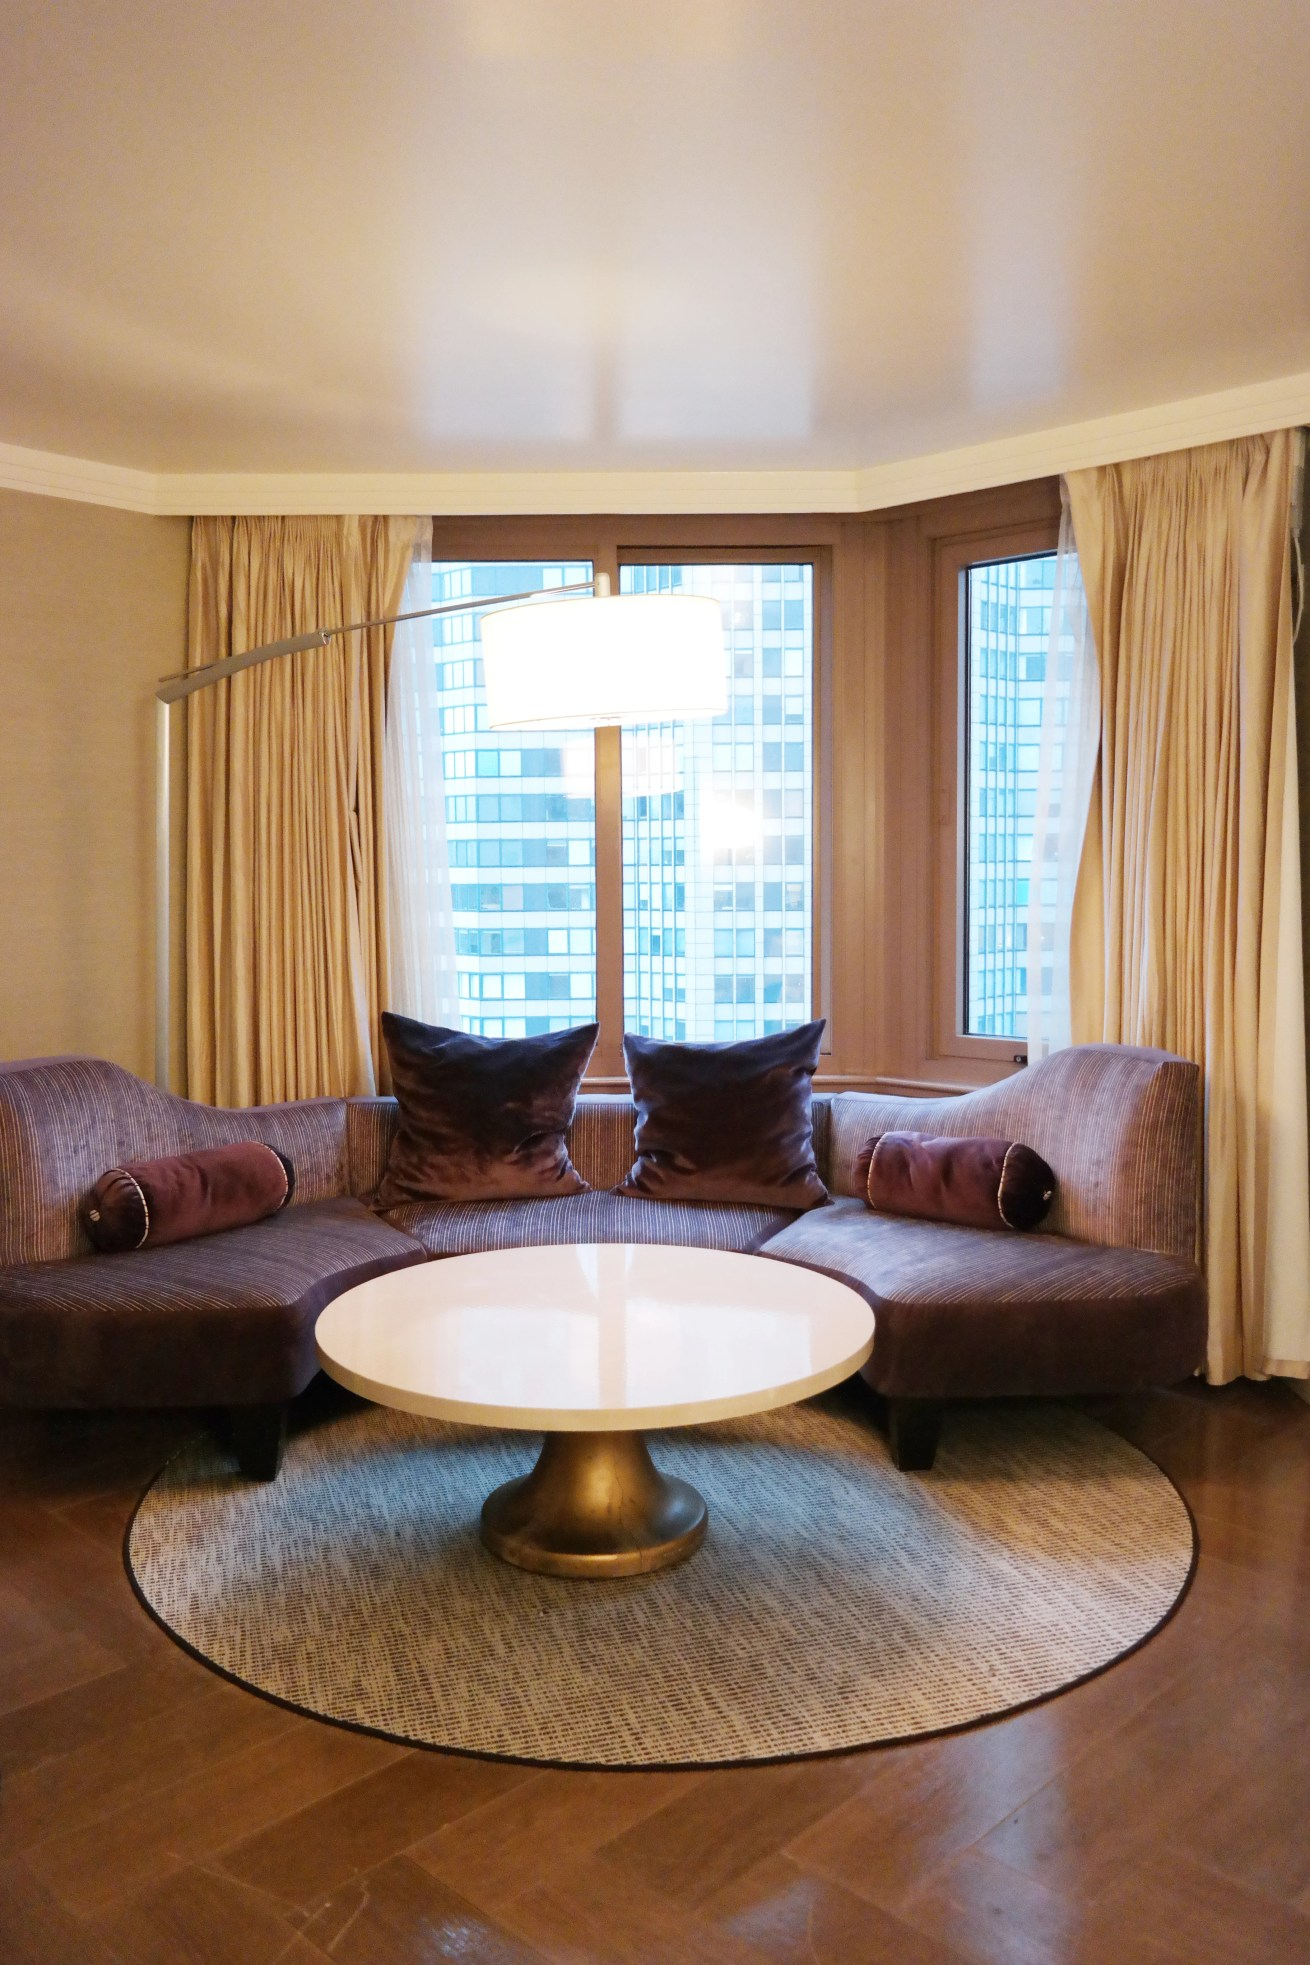 Luxury Hotels in Midtown NYC